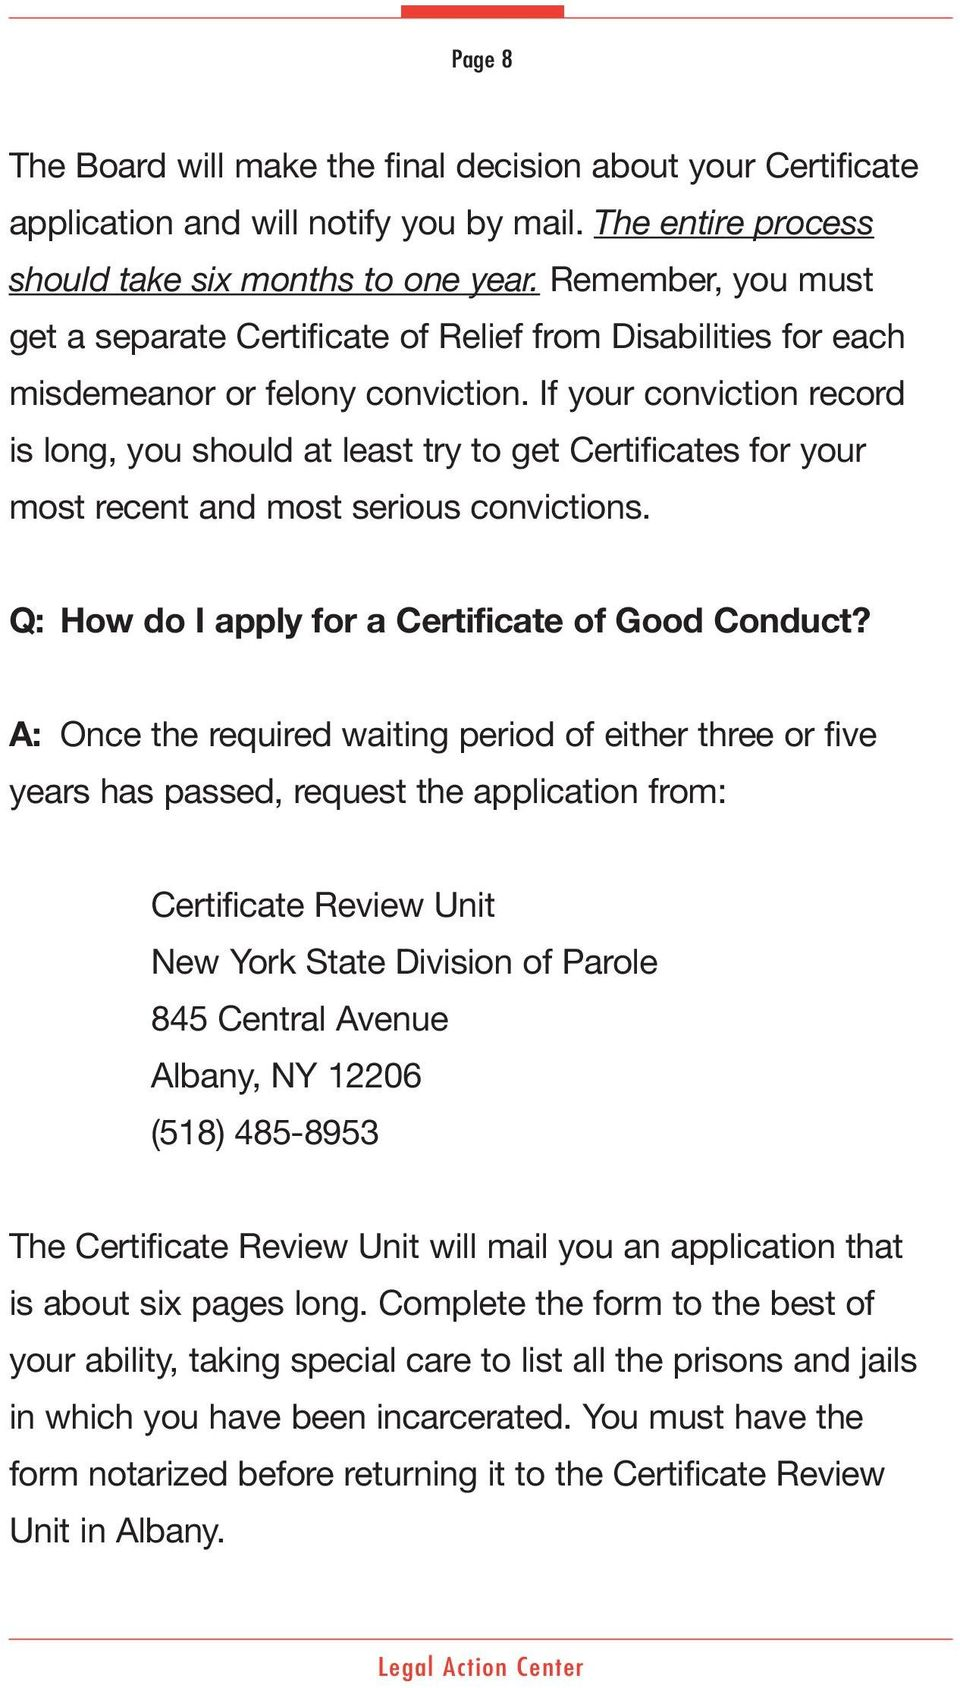 If your conviction record is long, you should at least try to get Certificates for your most recent and most serious convictions. Q: How do I apply for a Certificate of Good Conduct?